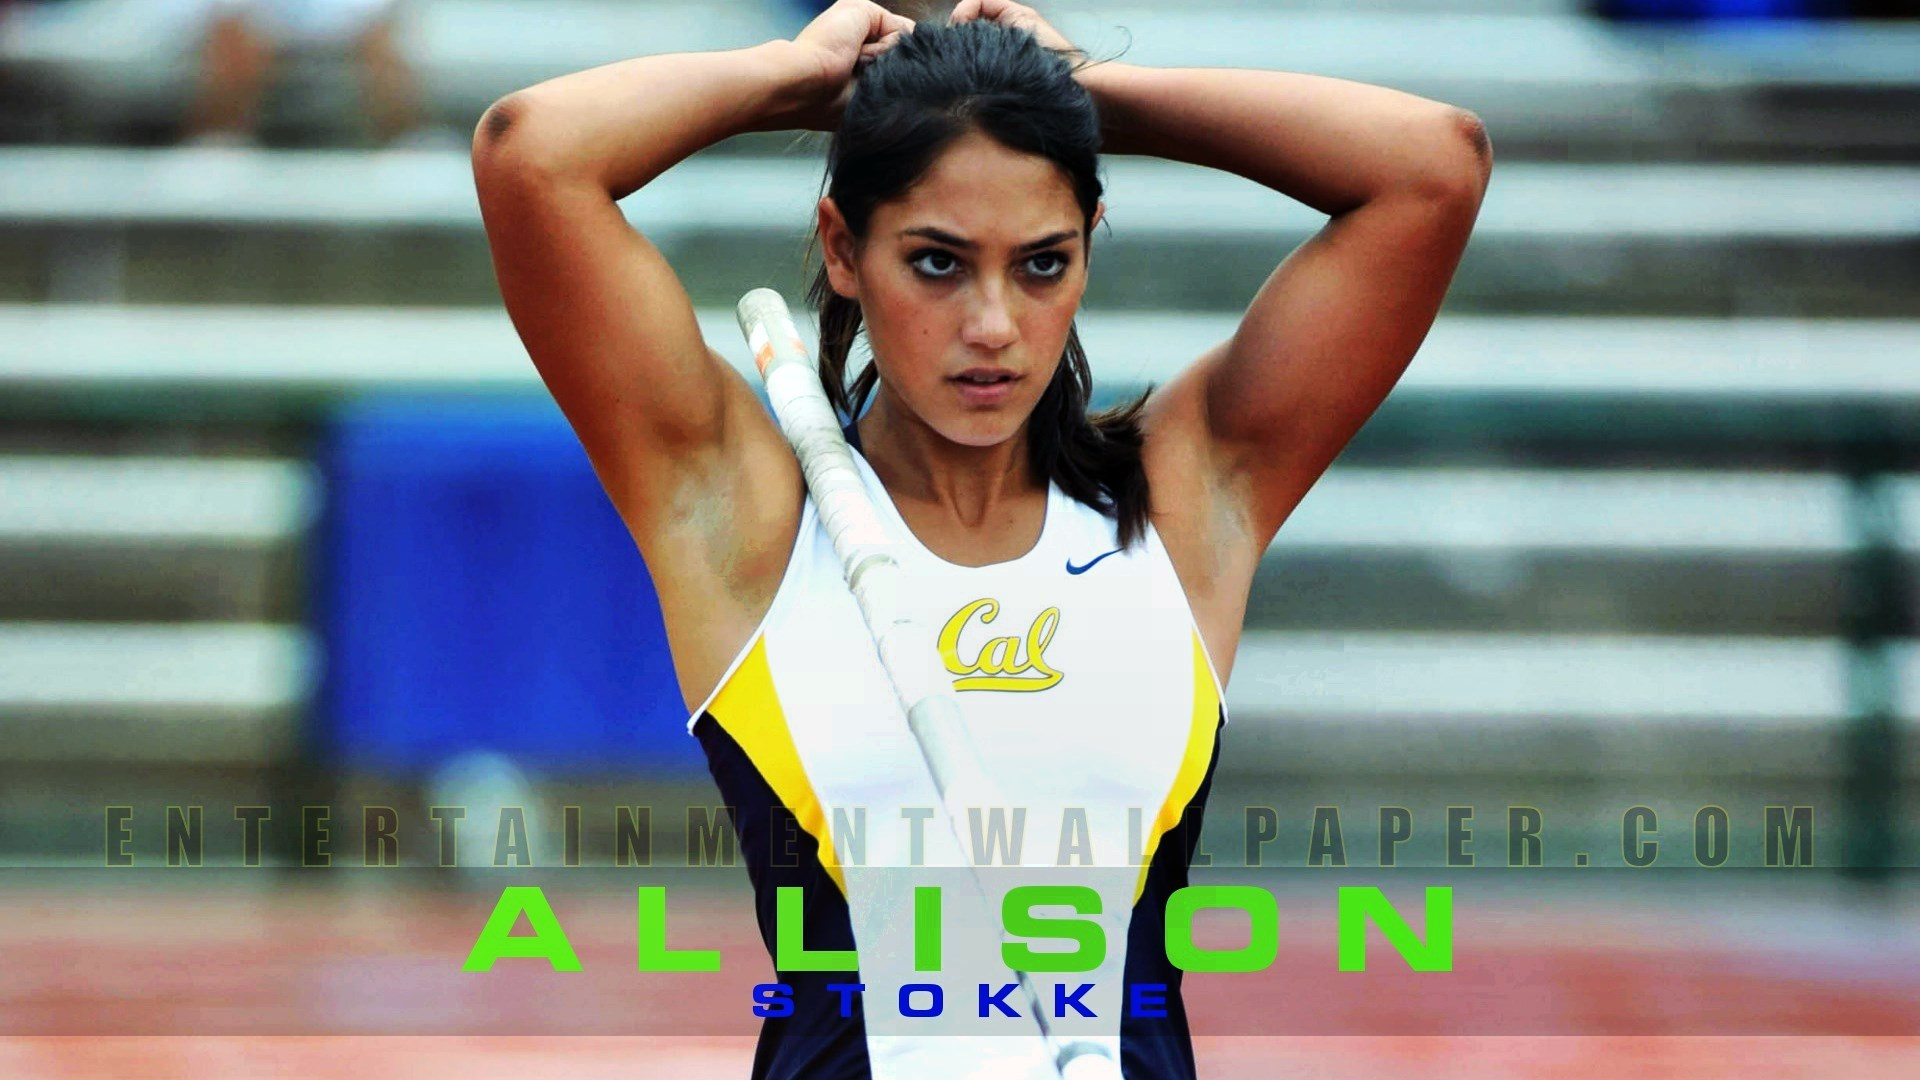 allison stokke wallpaper xpx - photo #2